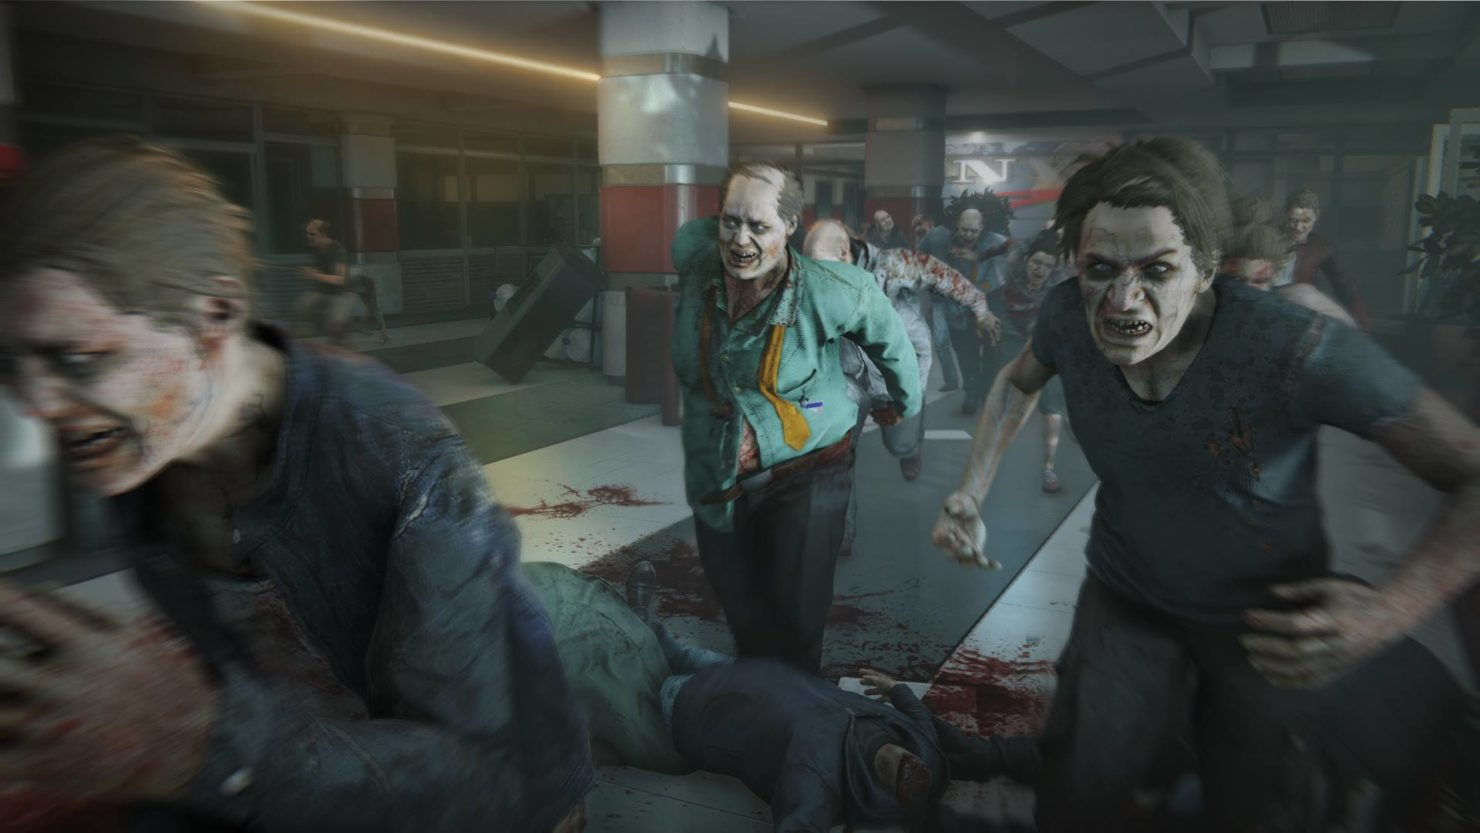 World War Z: Conjures hundreds of enemies simultaneously